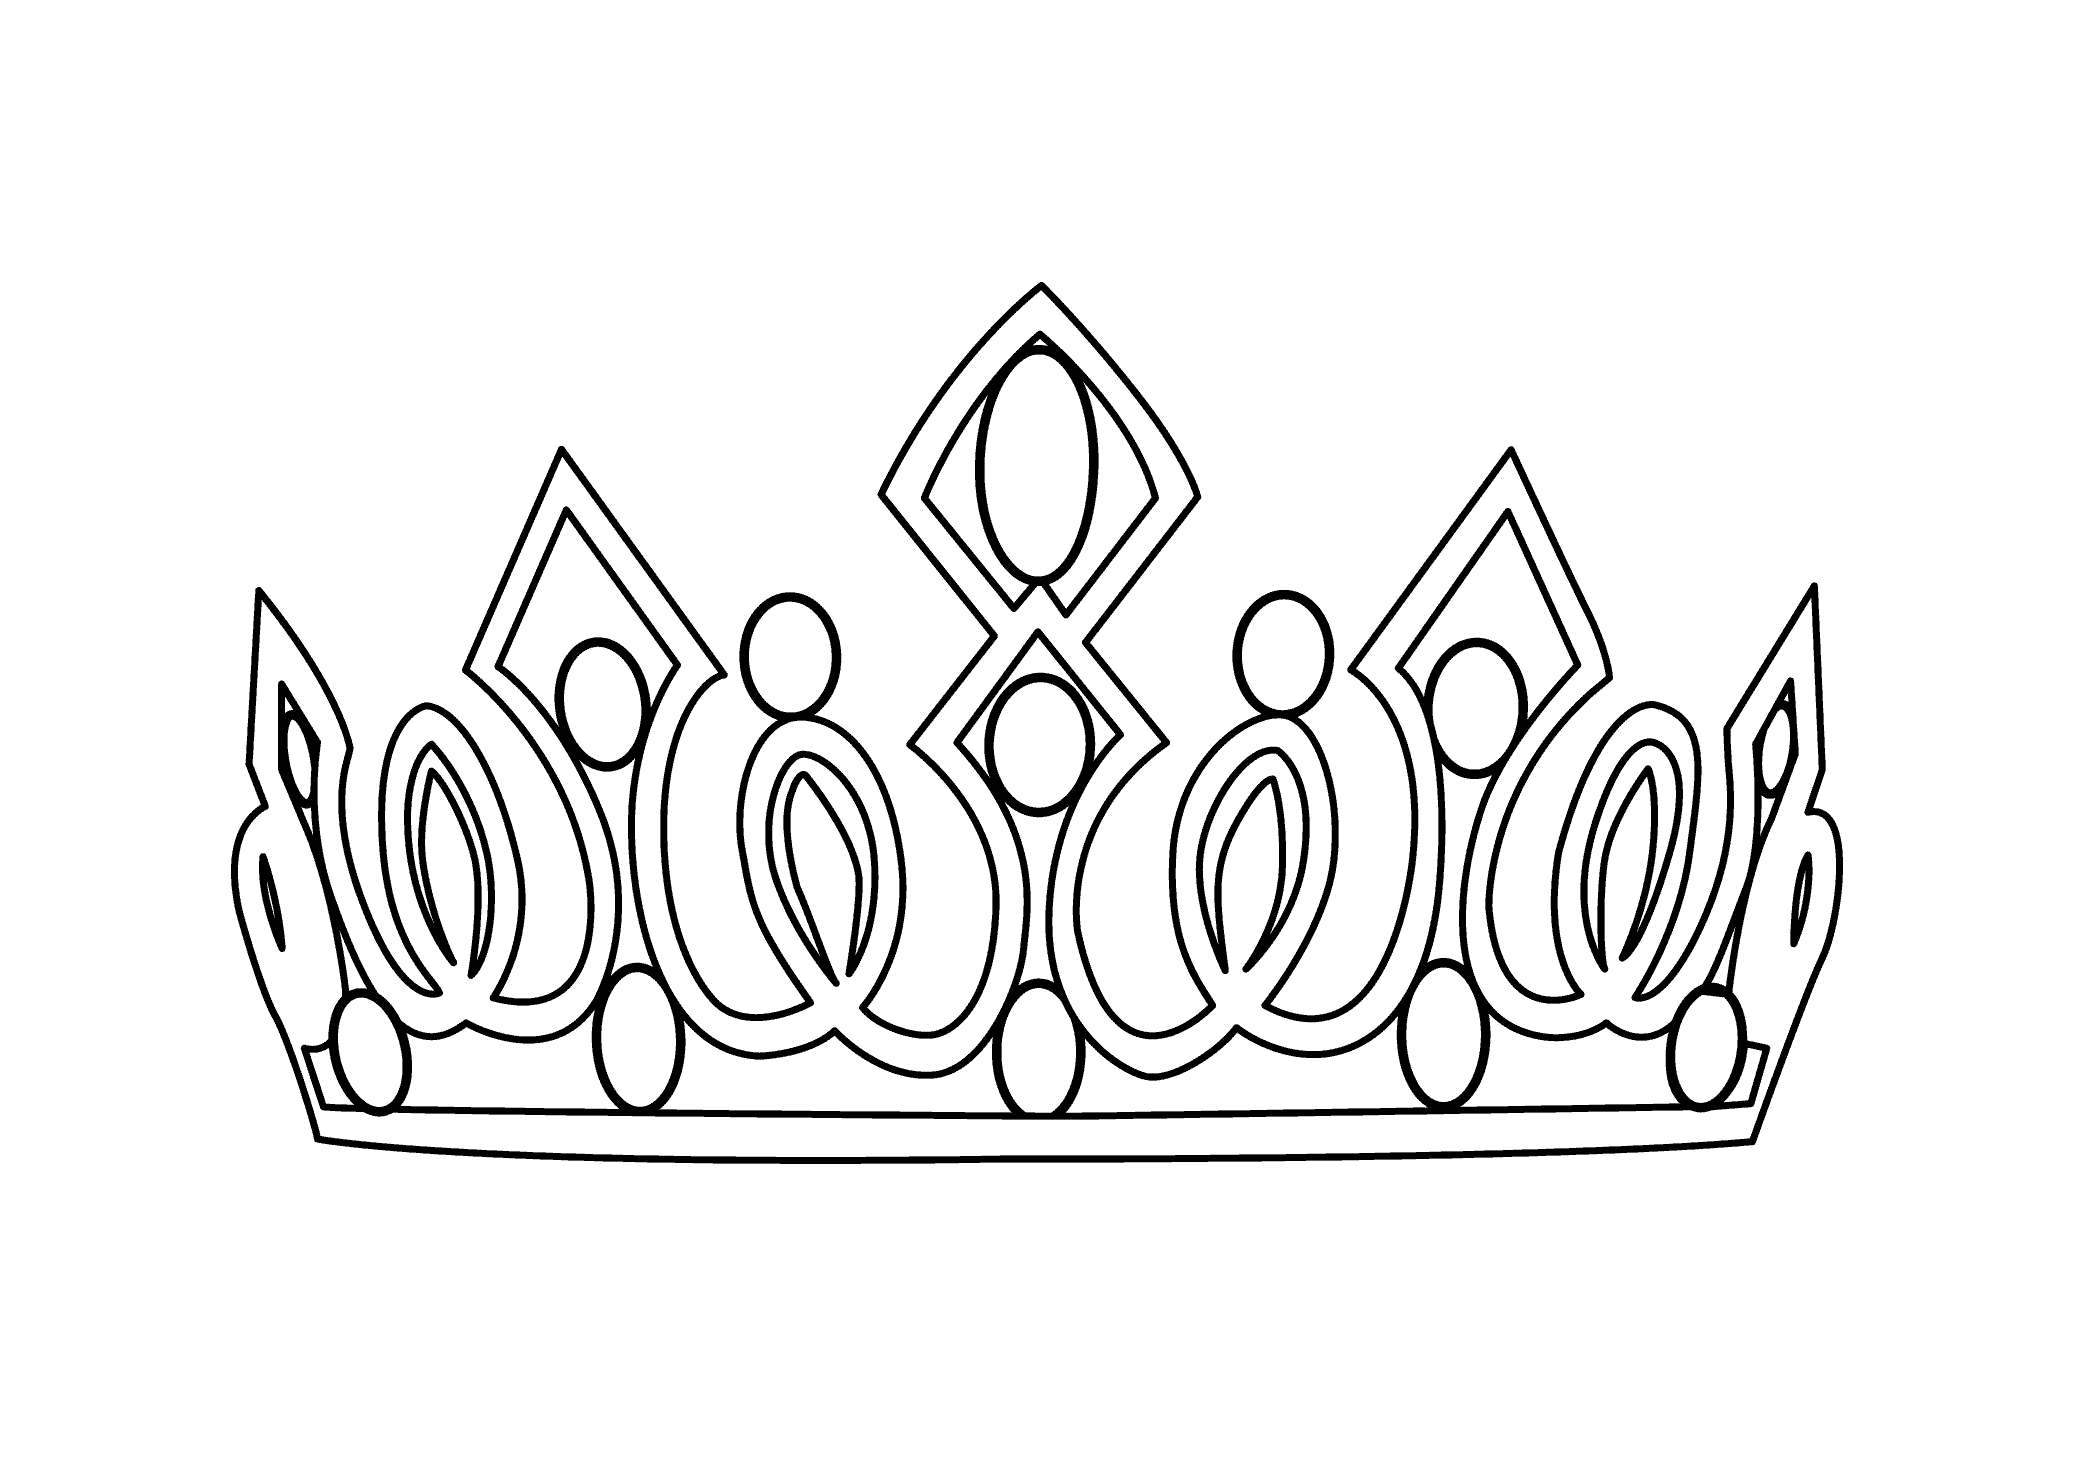 Medieval Crown Drawing at GetDrawings.com | Free for personal use ...